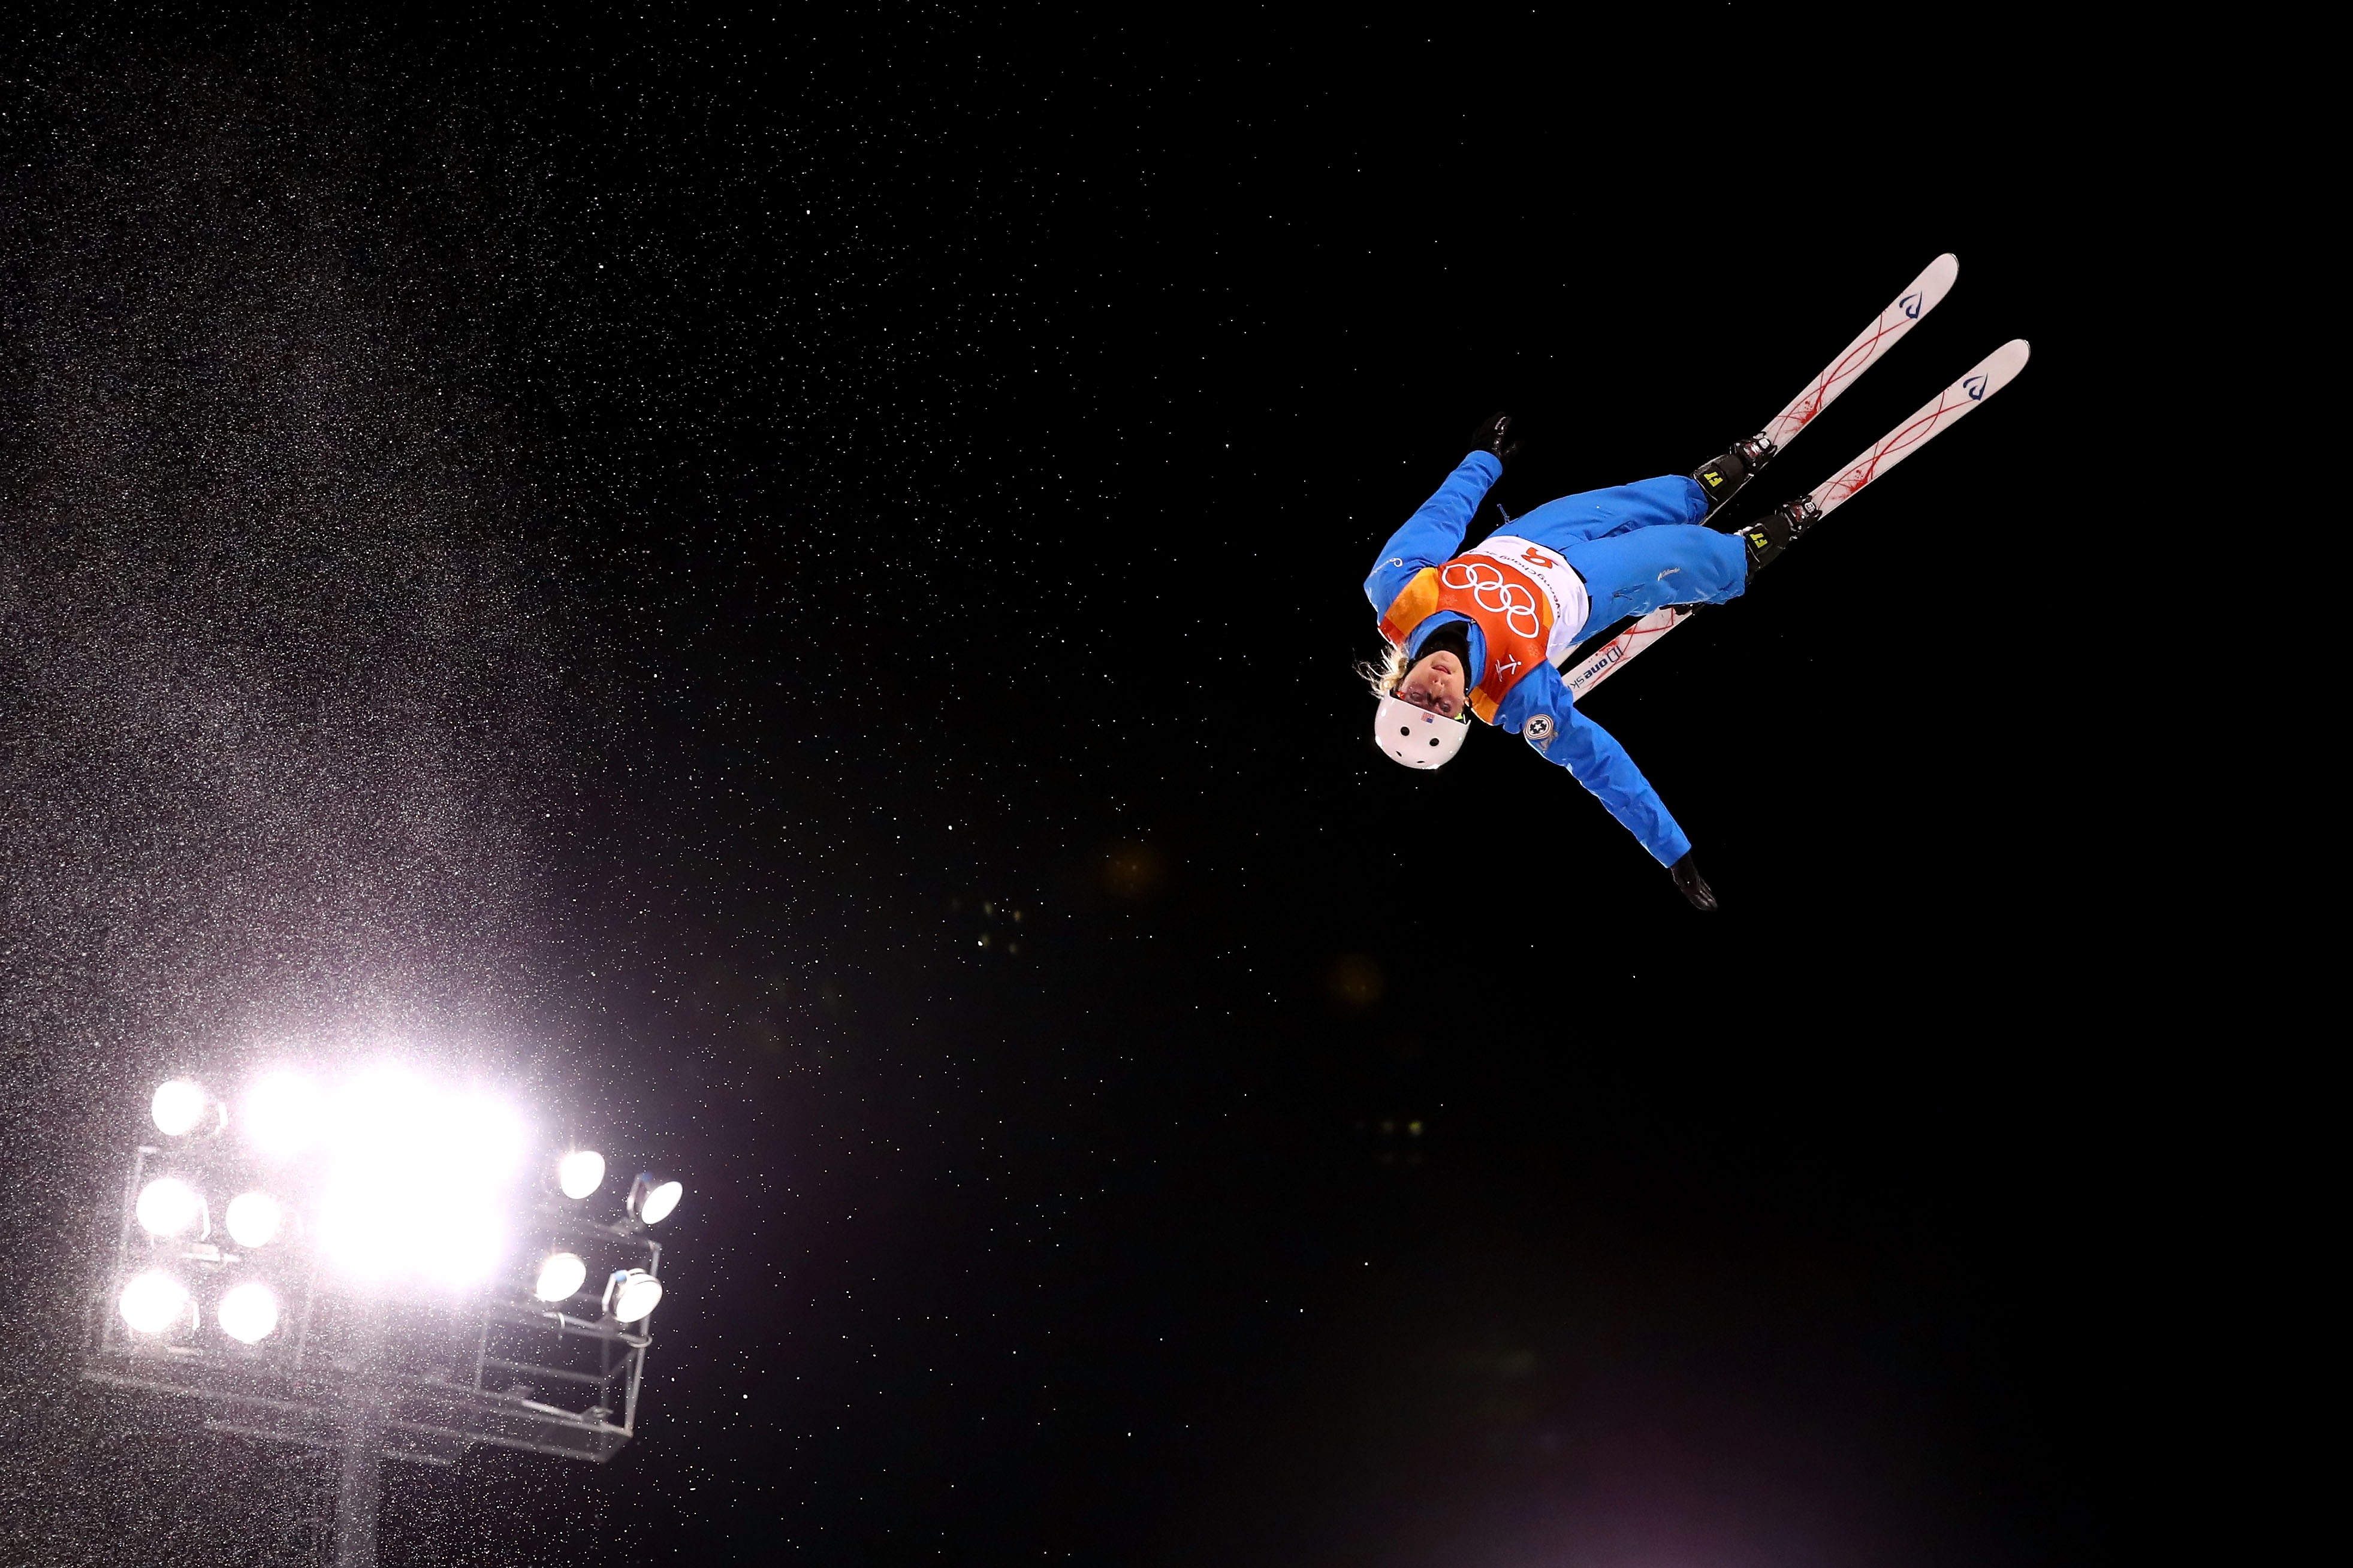 Kiley McKinnon qualified fifth in the aerials Thursday night at Phoenix Snow Park. (Getty Images - Cameron Spencer)